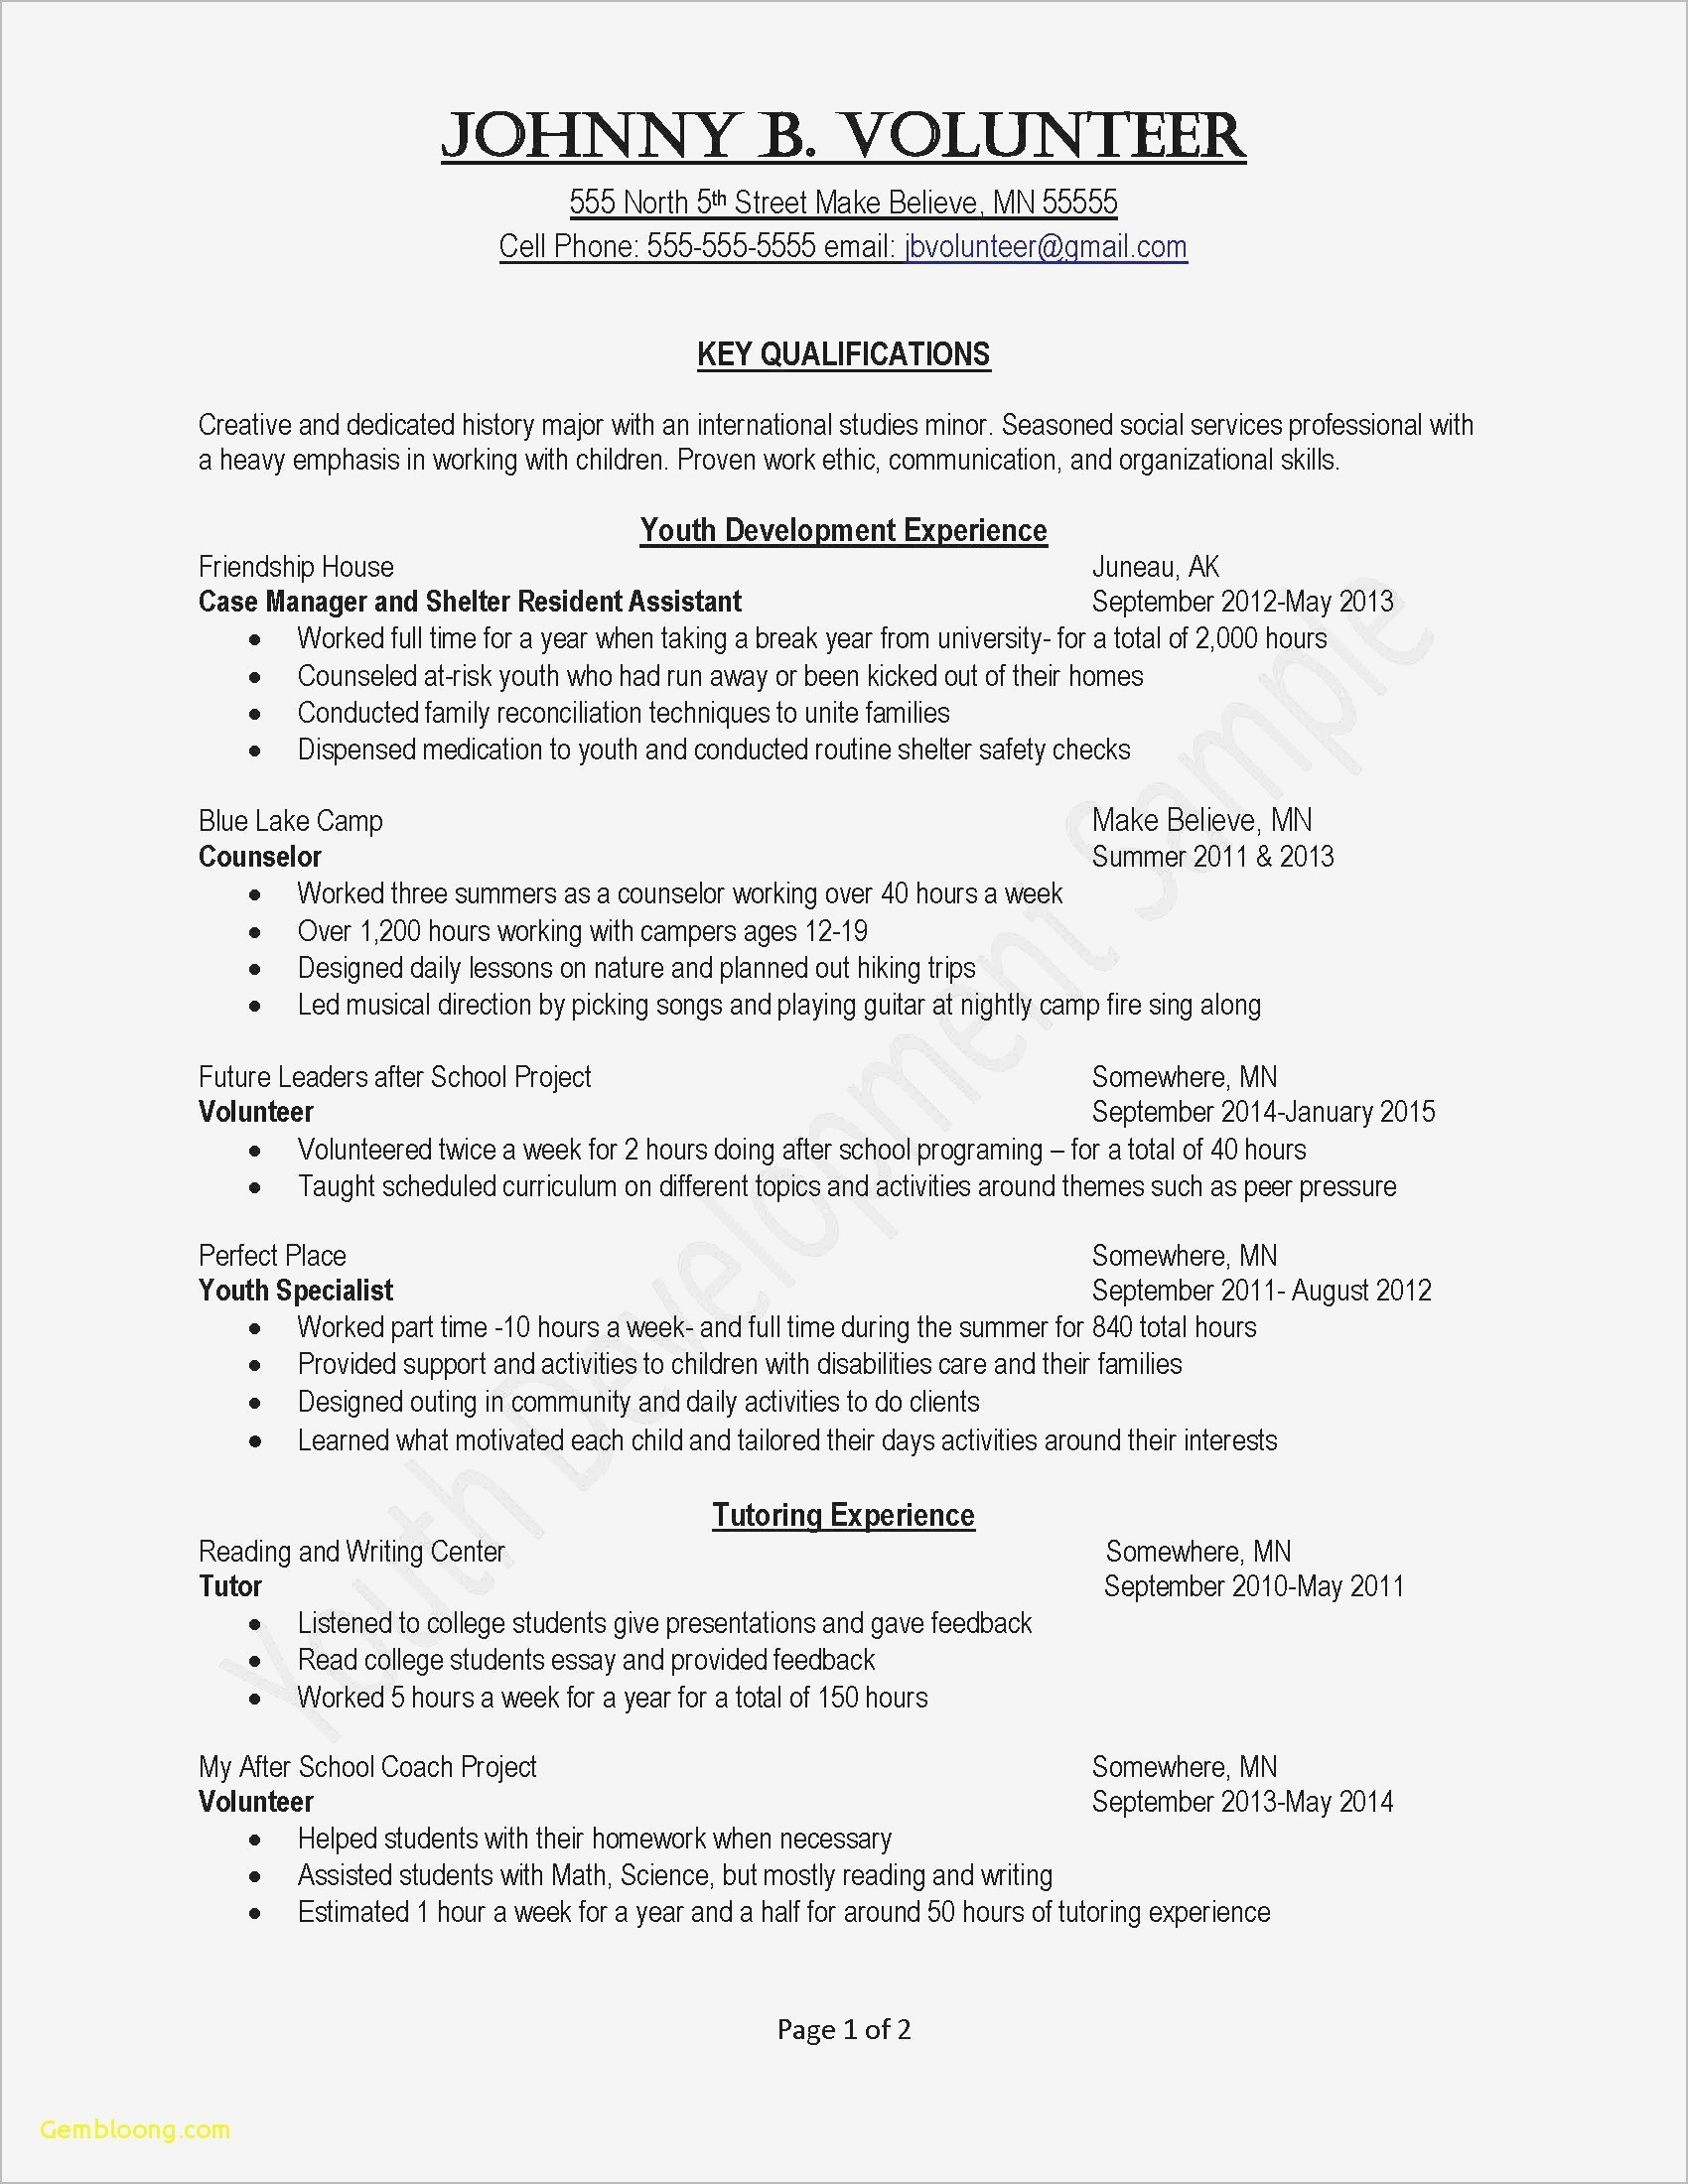 Survey Cover Letter Template - Writing A Cover Letter for Teaching Position New Job Fer Letter